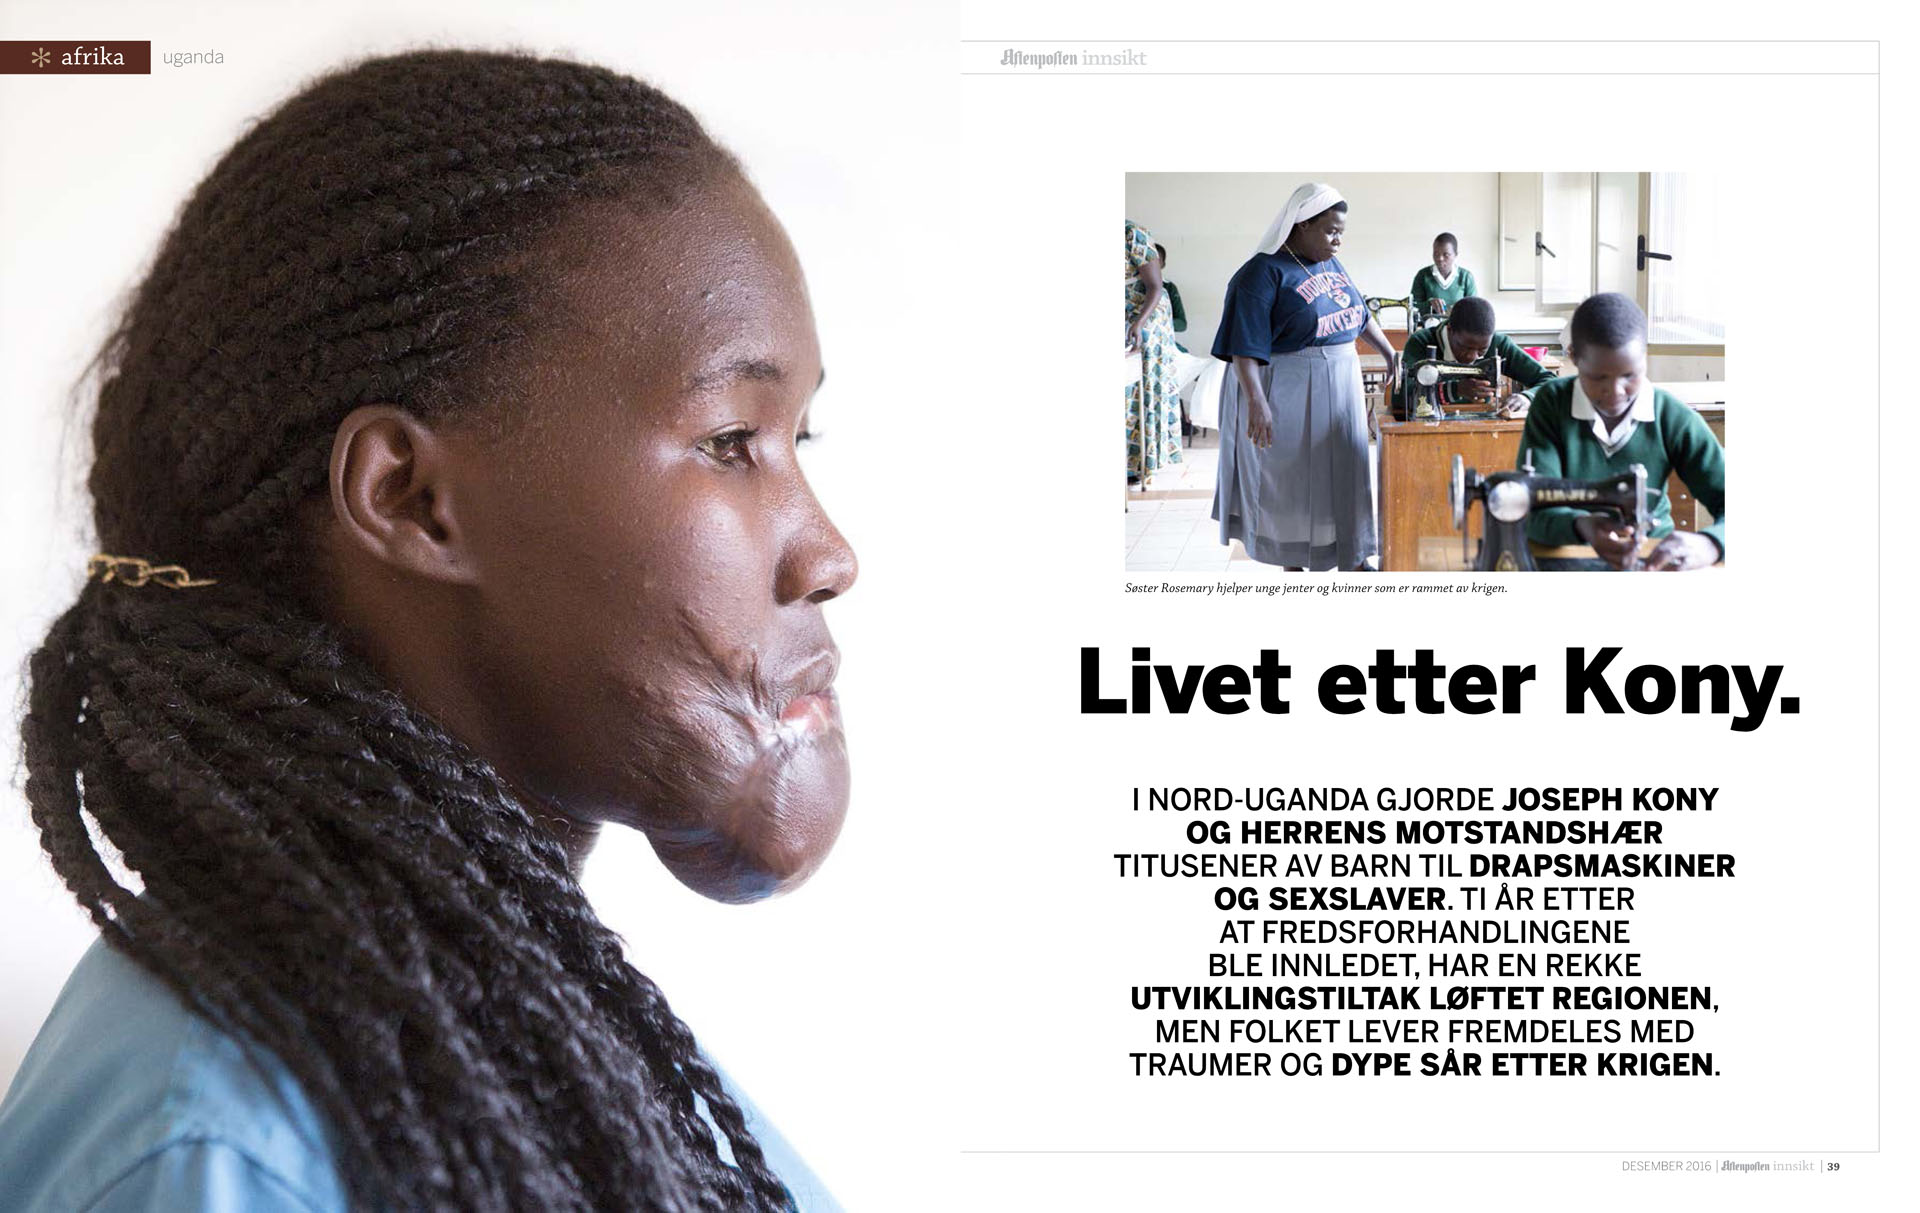 Story from Northern Uganda for Aftenposten Innsikt